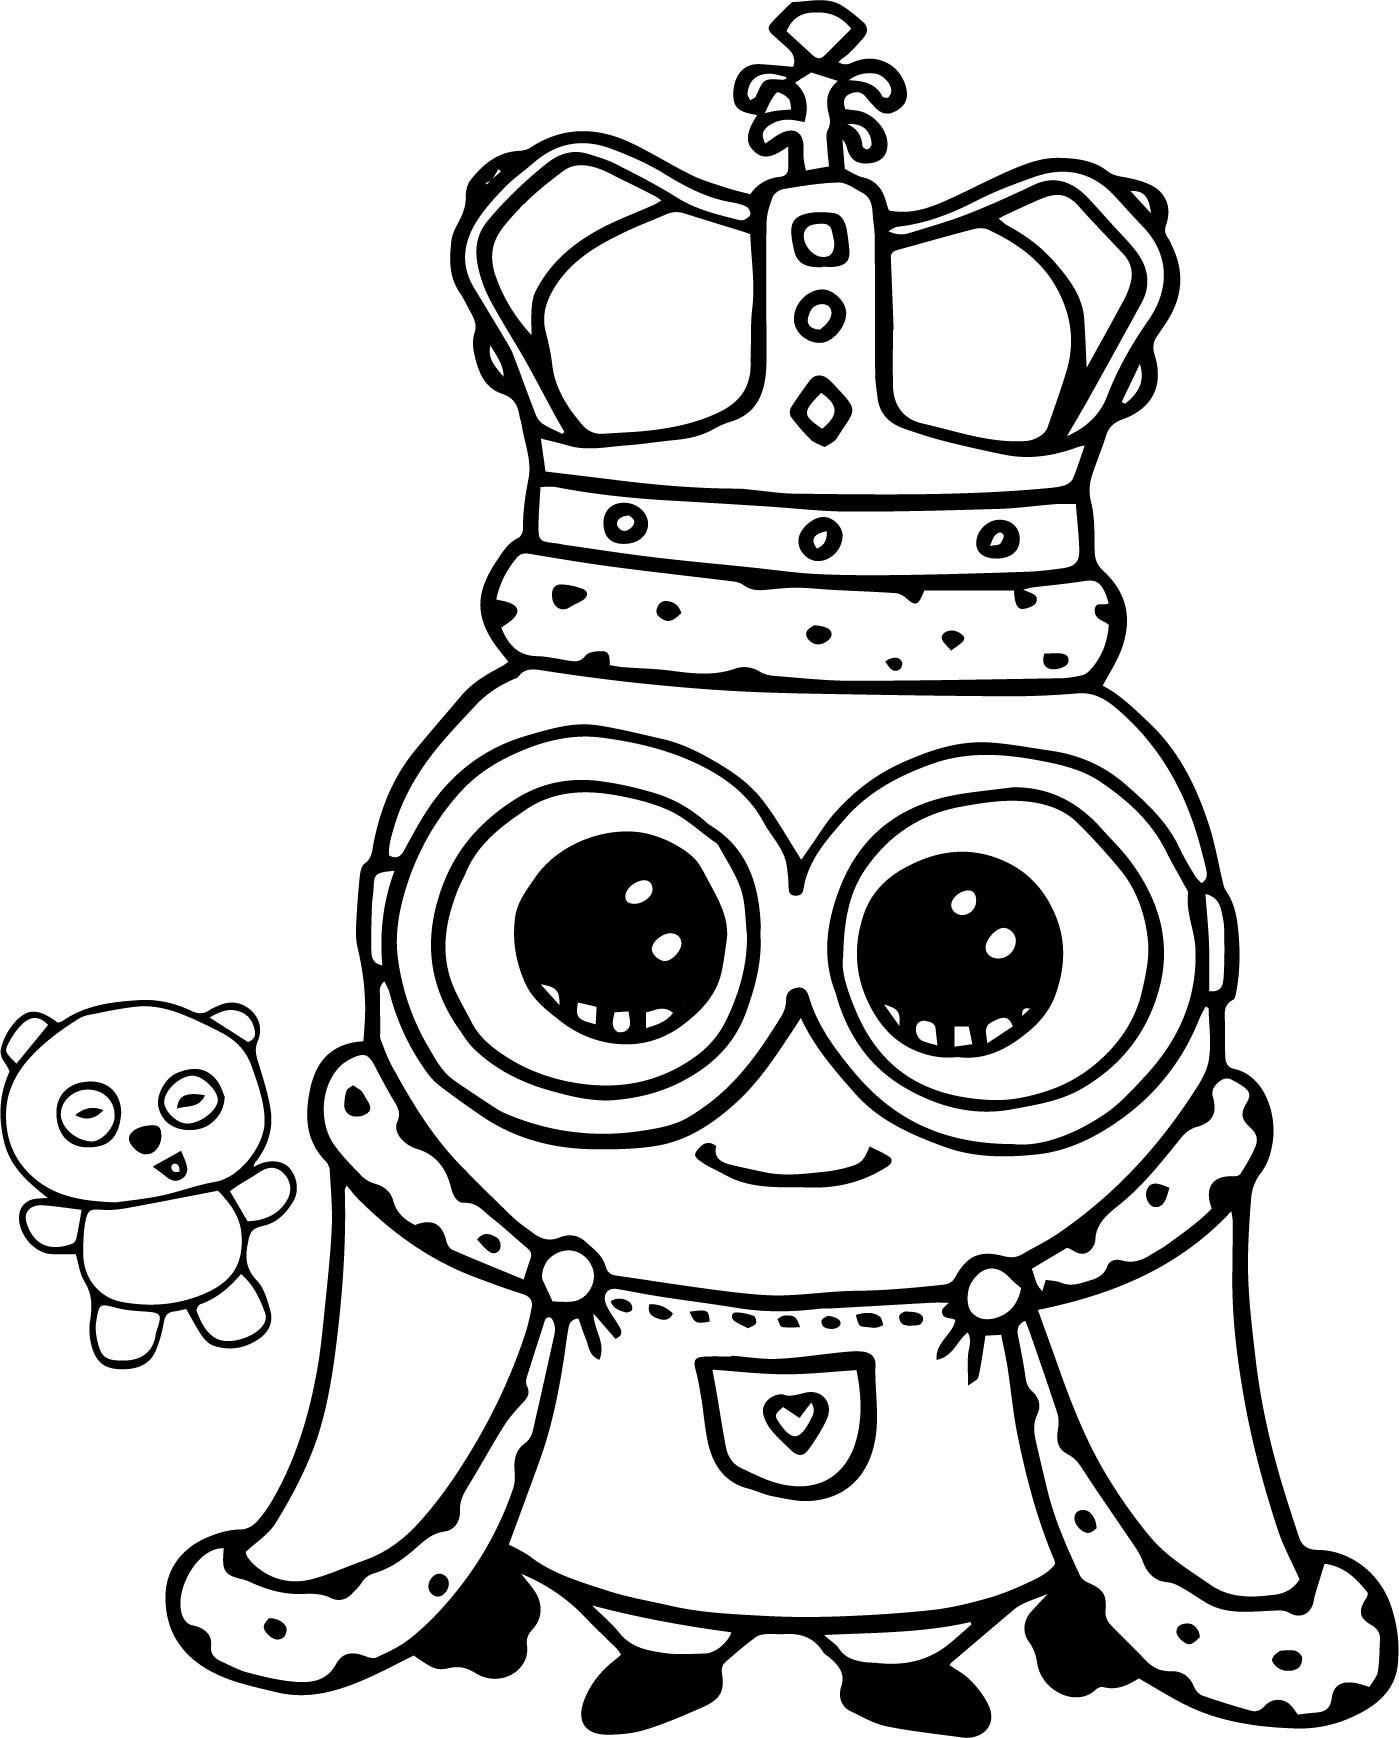 cute k coloring pages cute coloring pages best coloring pages for kids coloring cute pages k